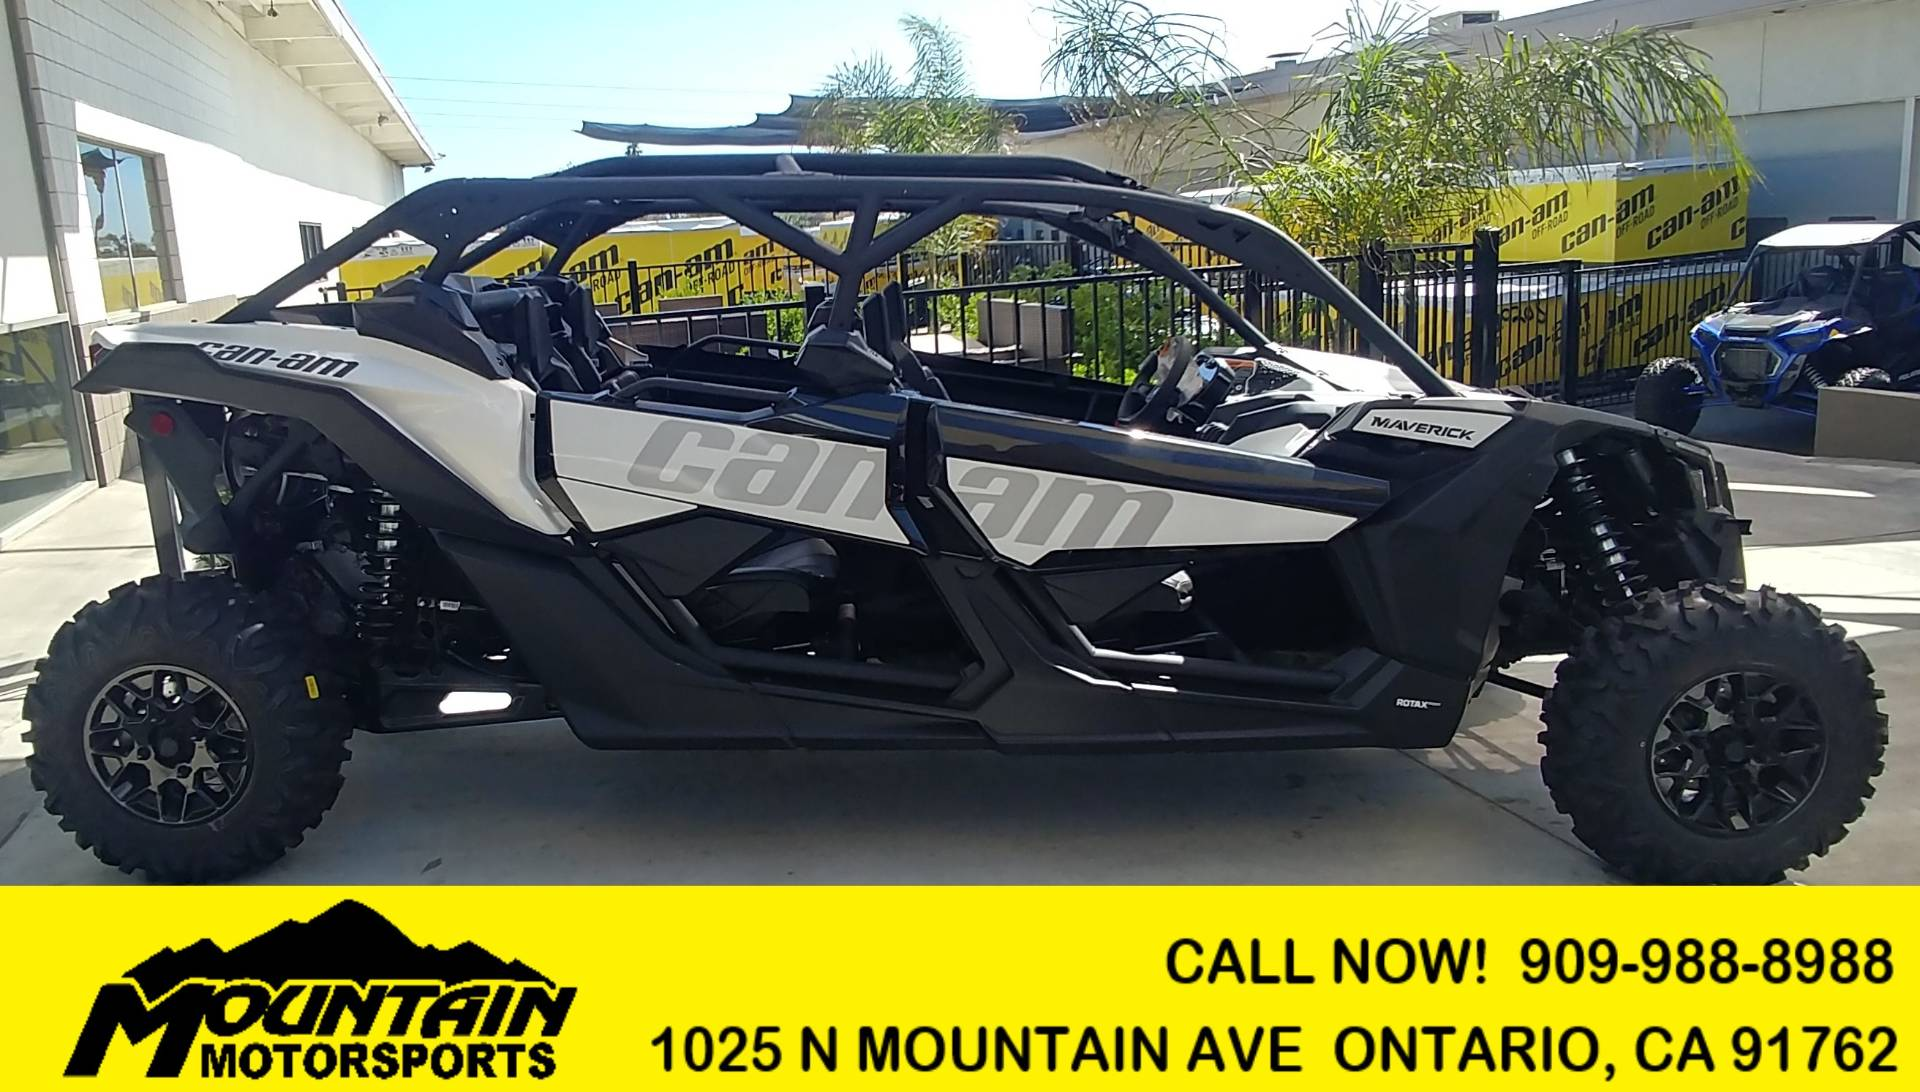 2019 Can-Am Maverick X3 Max Turbo R in Ontario, California - Photo 1